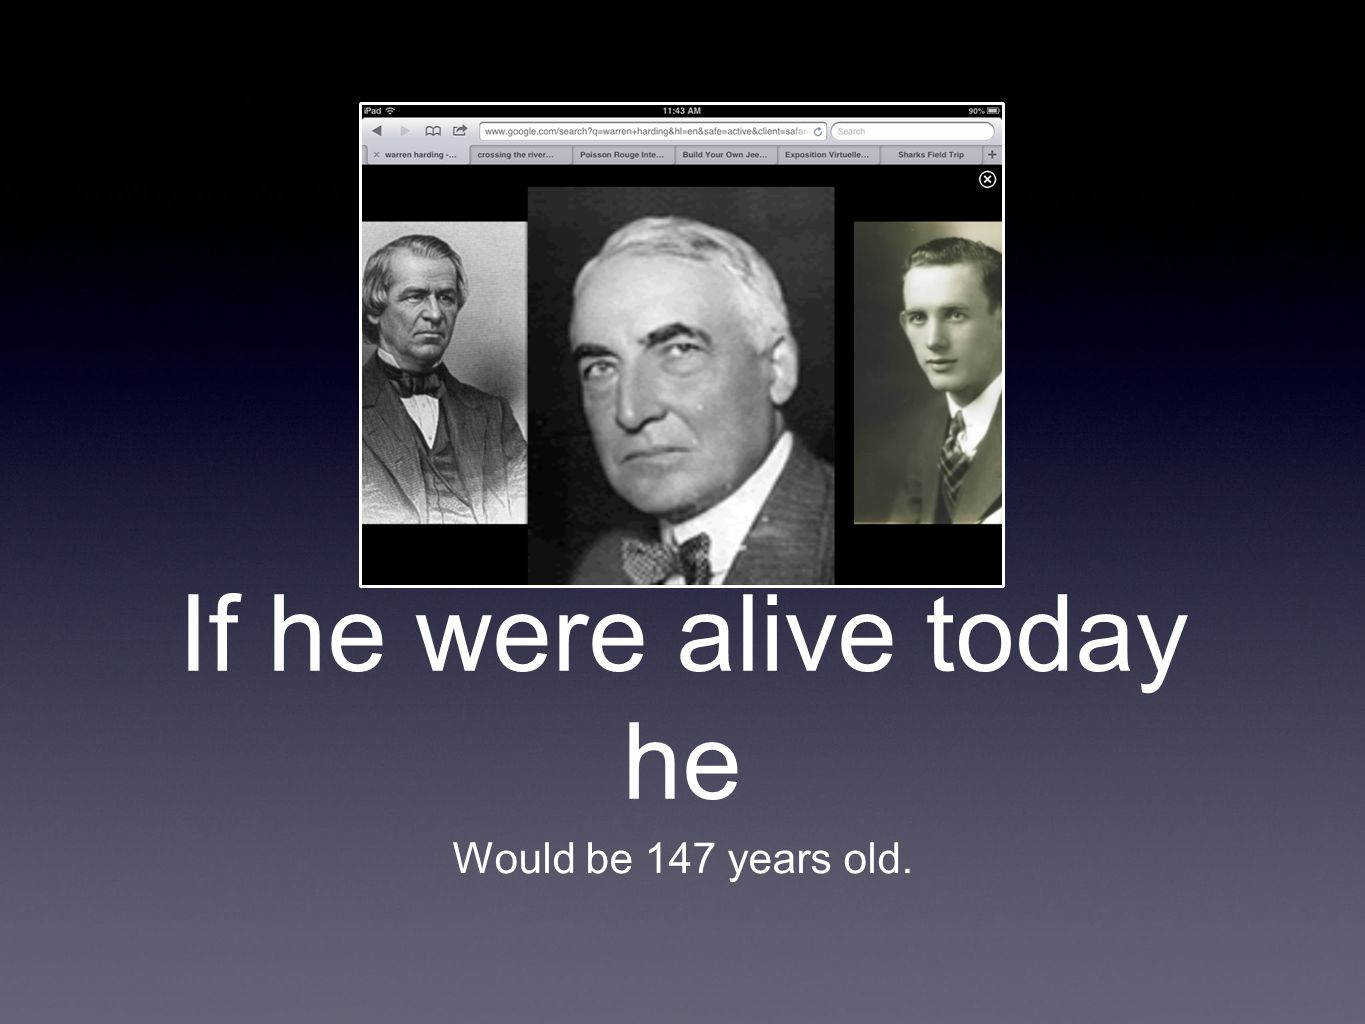 If he were alive today he